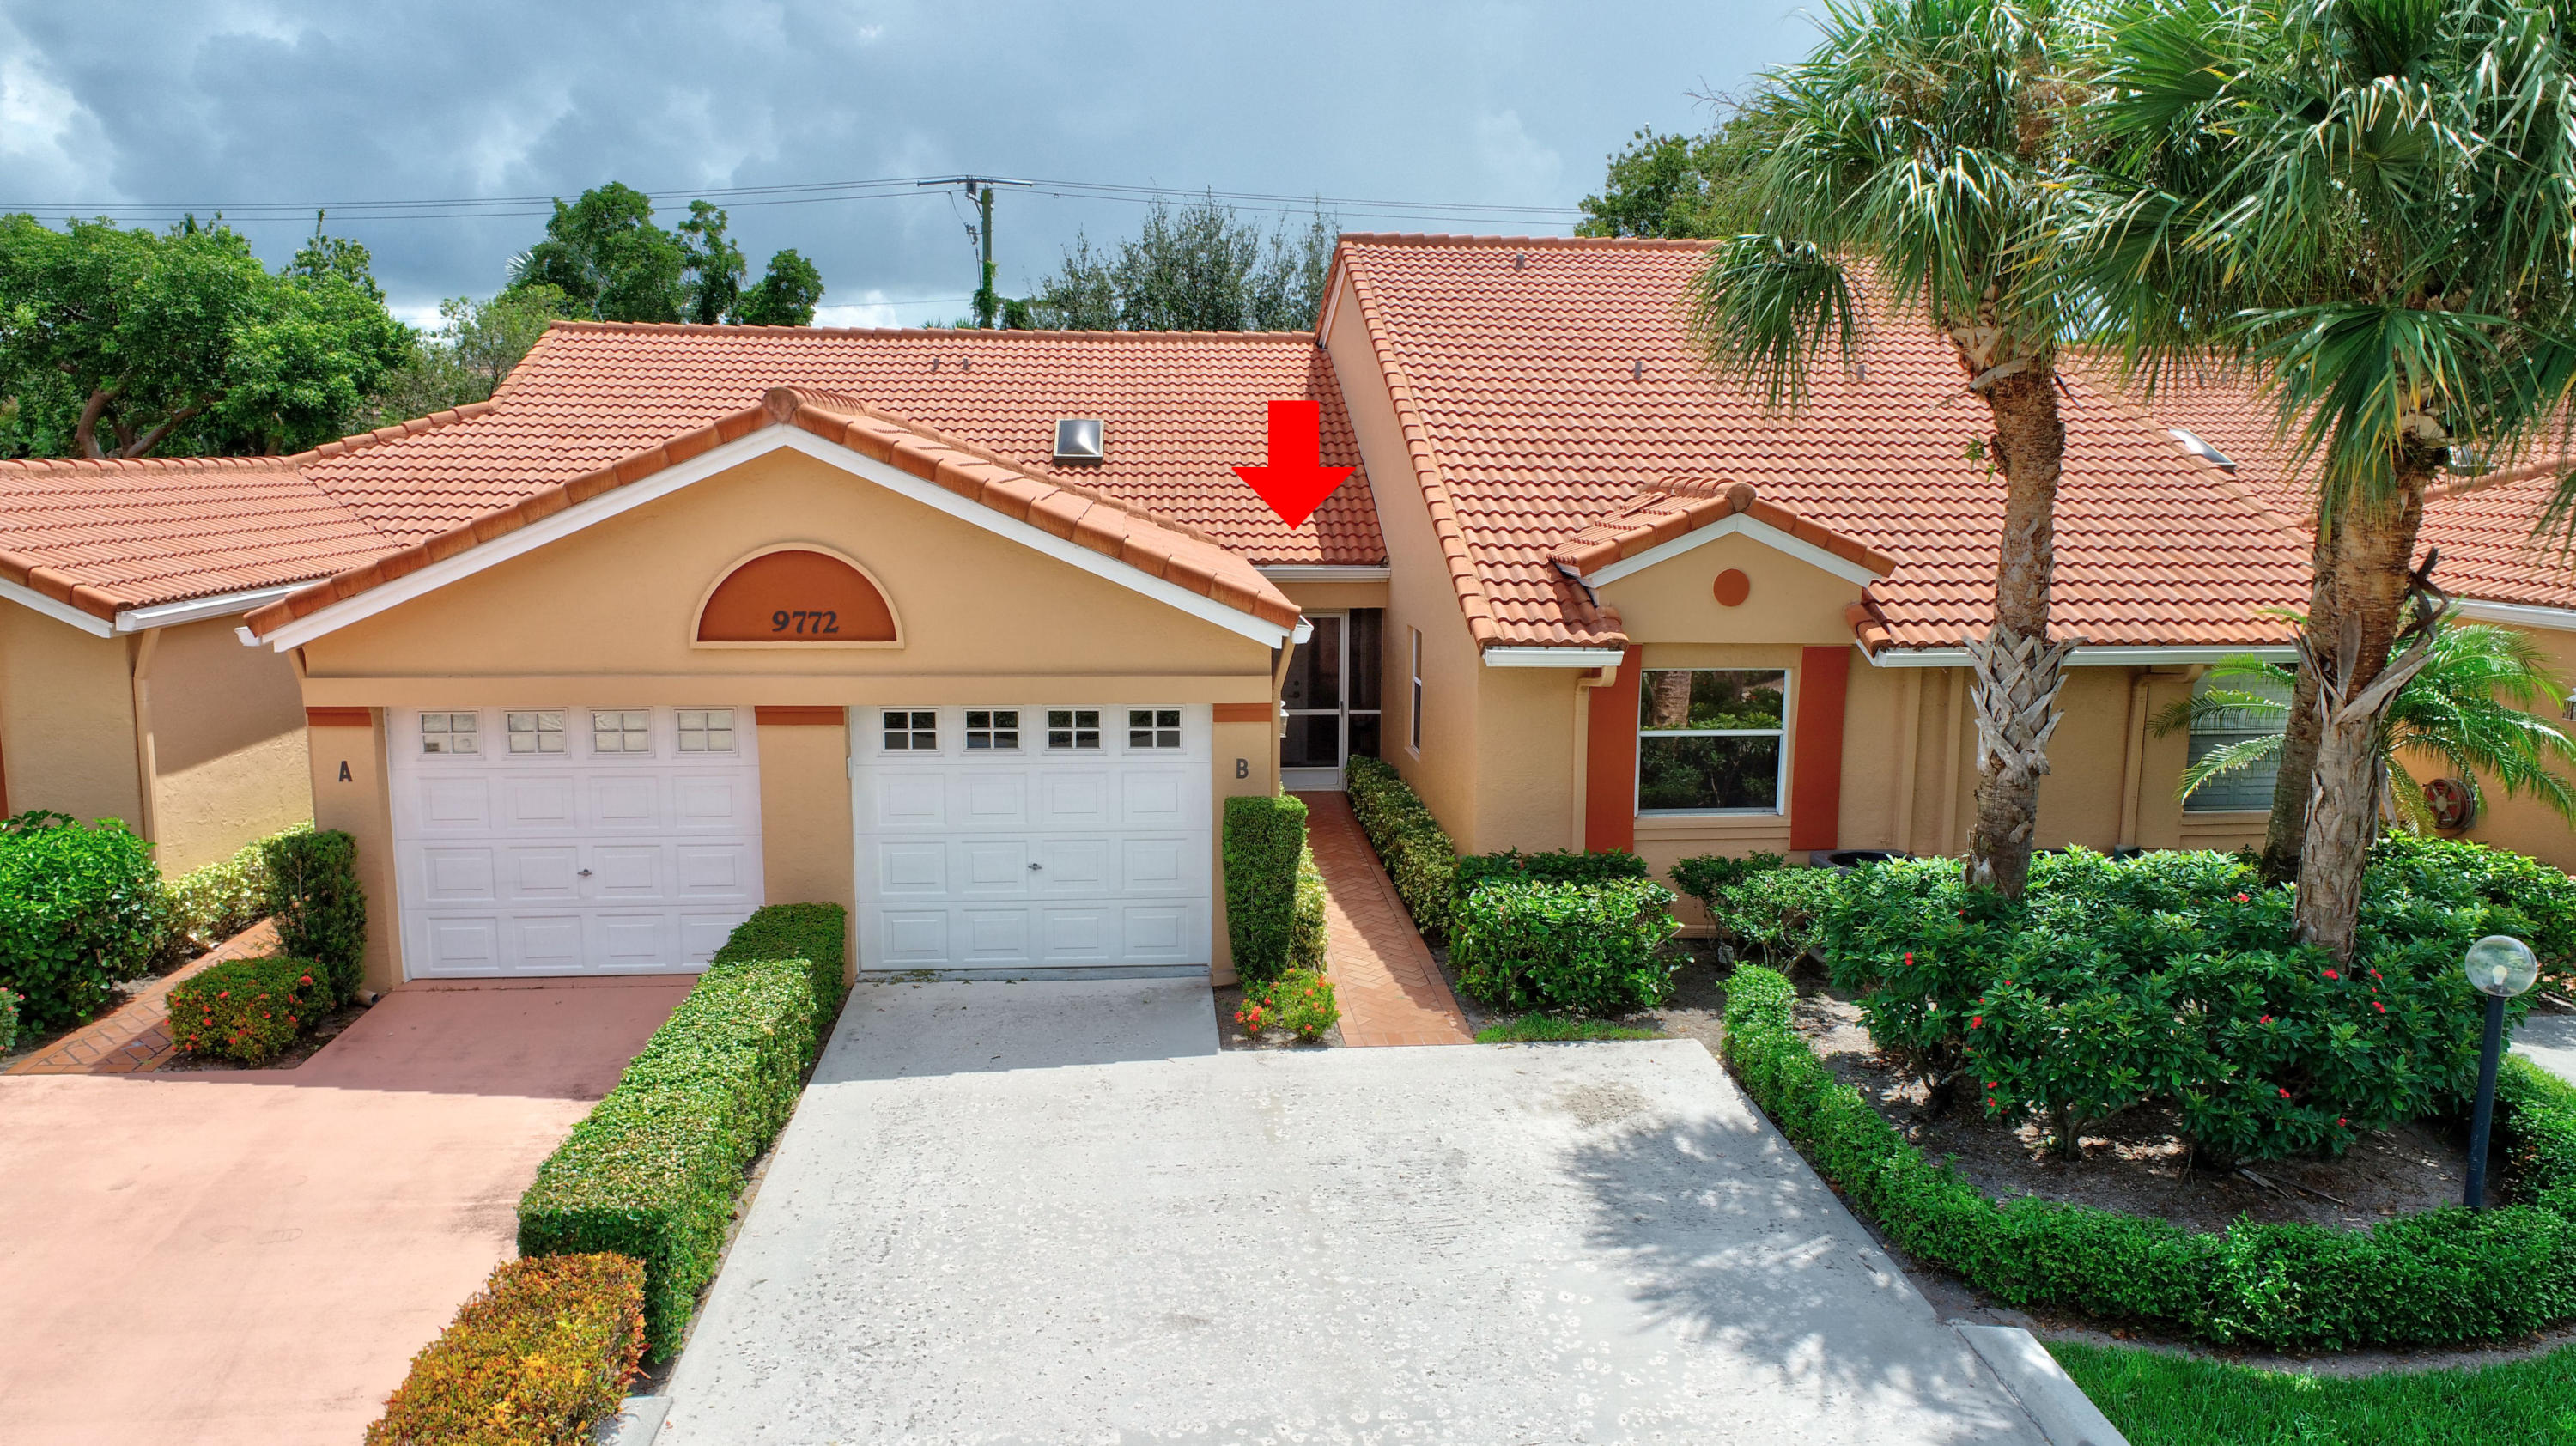 9772 Summerbrook Terrace B Boynton Beach, FL 33437 photo 27